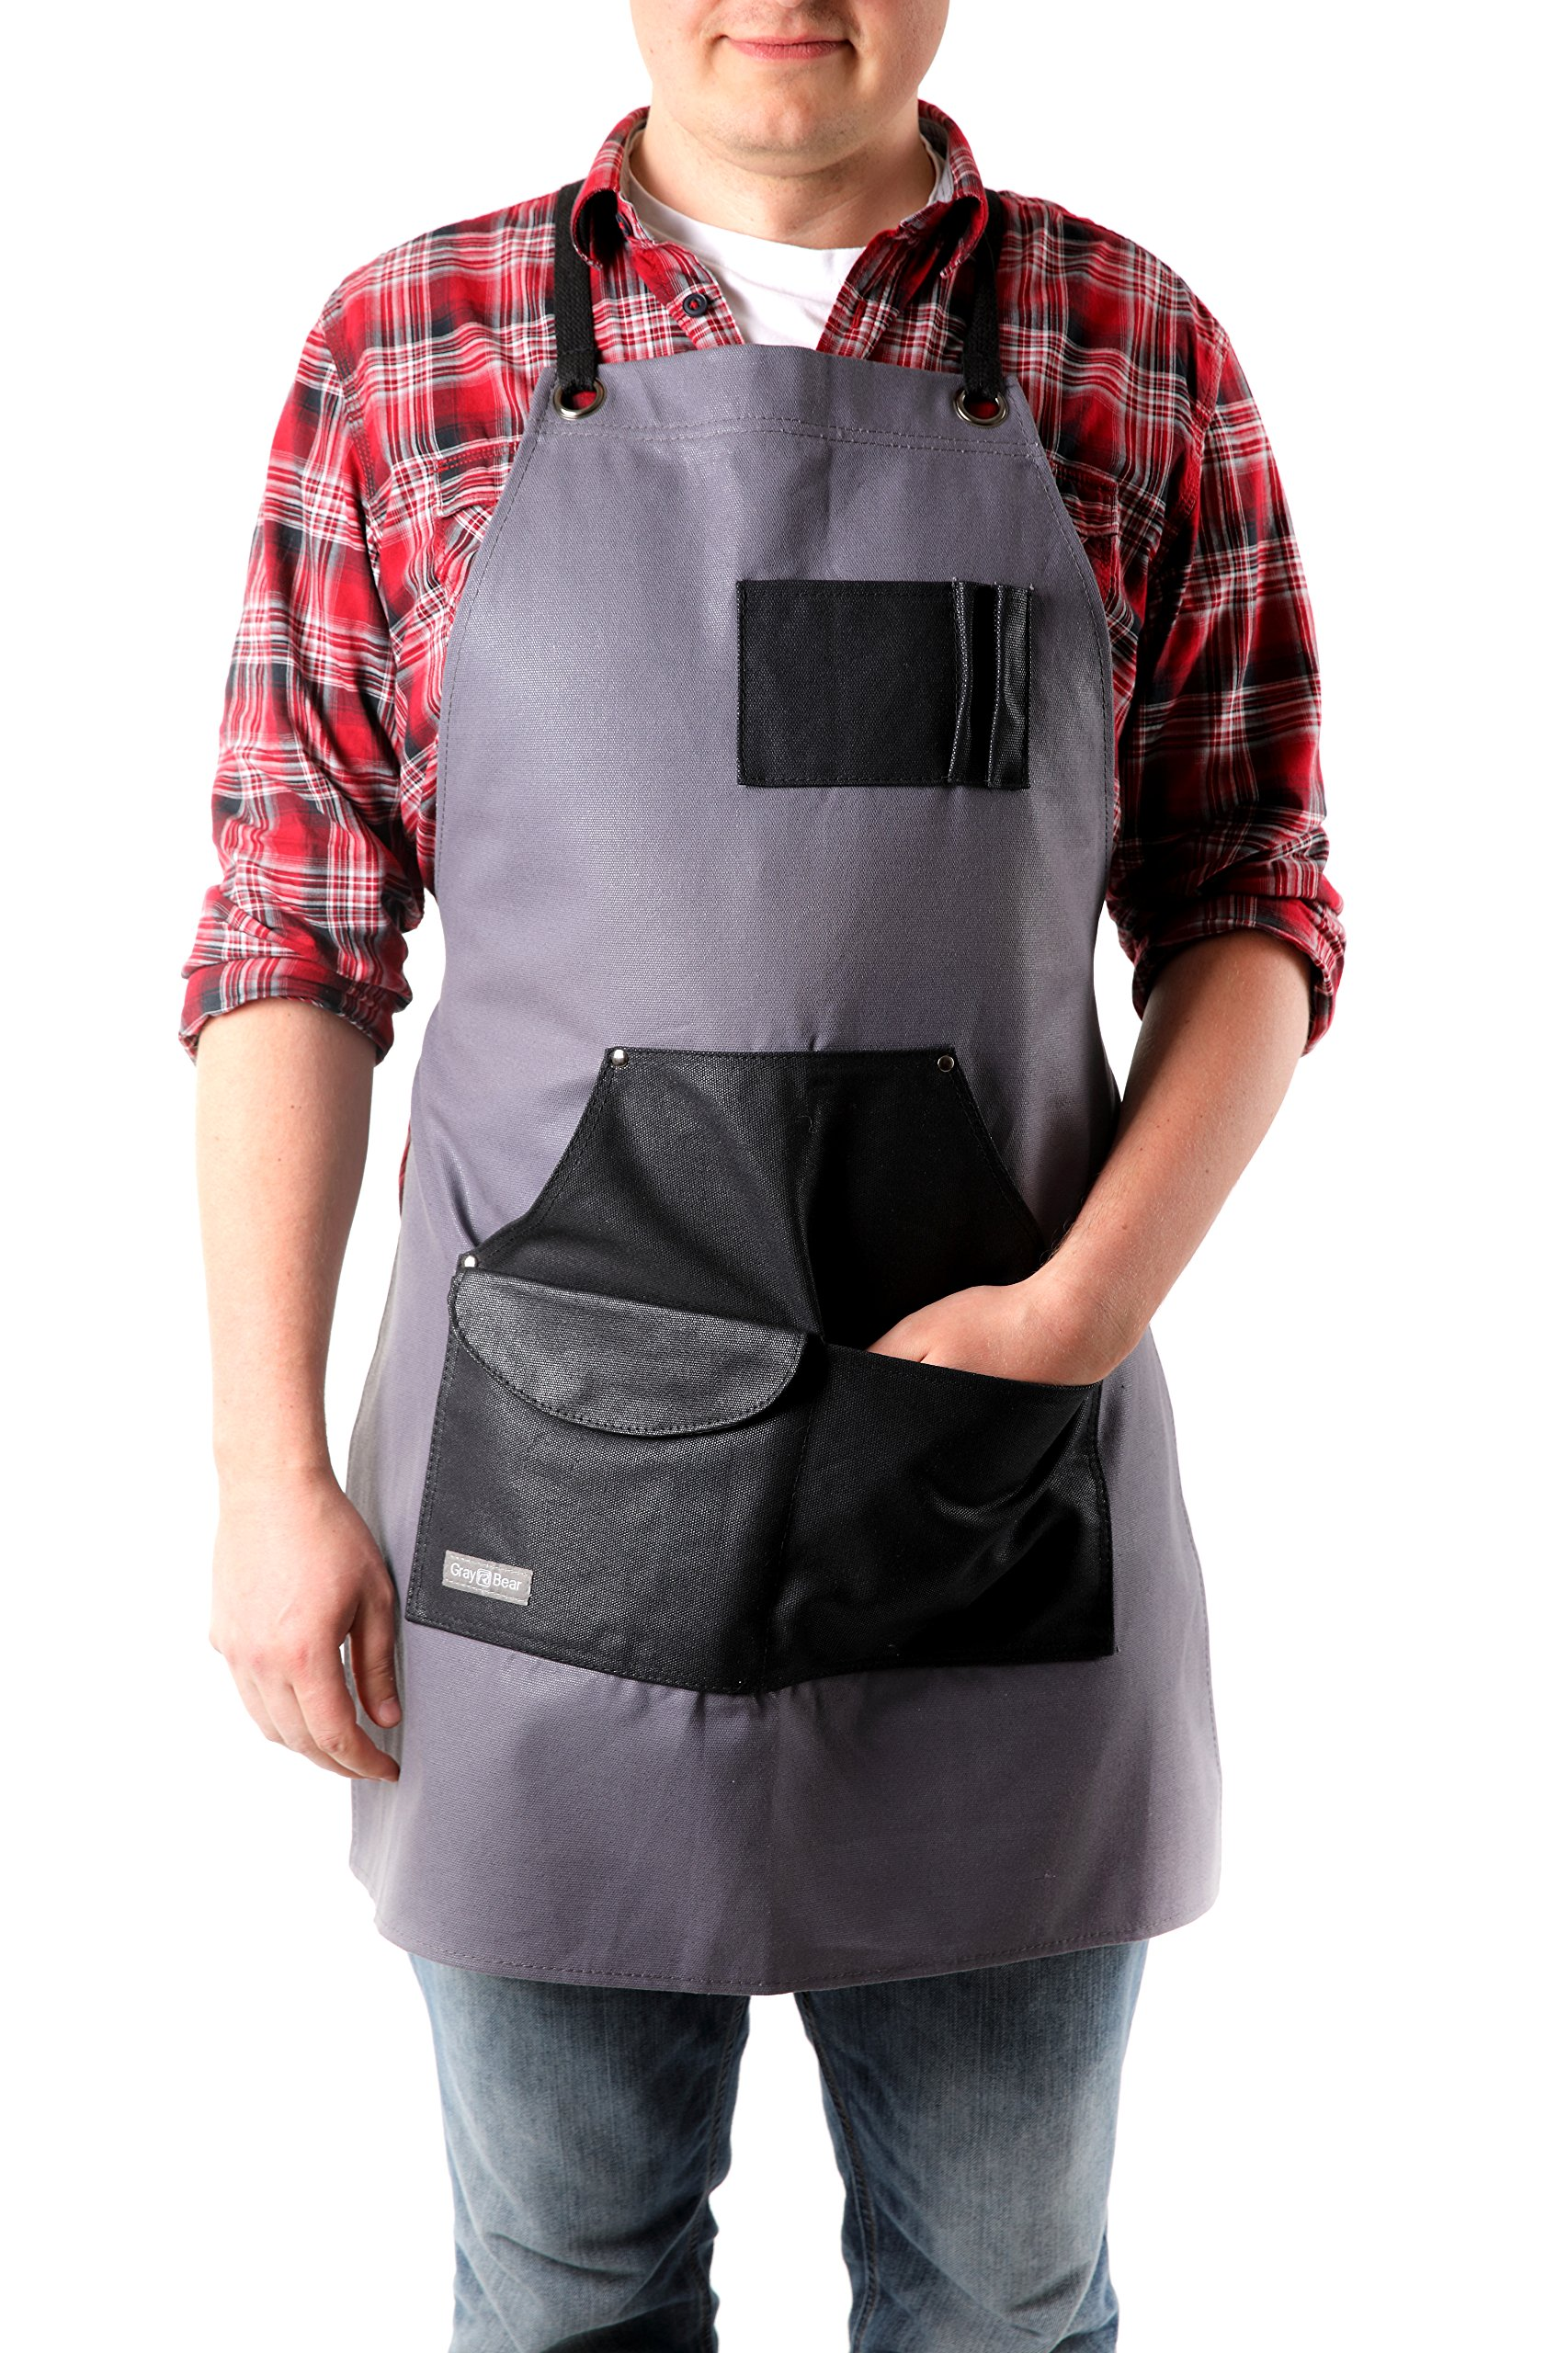 Gray Bear Waxed Canvas Work Apron | Utility Work Coverall w/ Built-In Pockets | Adjustable, Reinforced Straps | Versatile Workshop, Blacksmith, Carpenter| for Men & Women